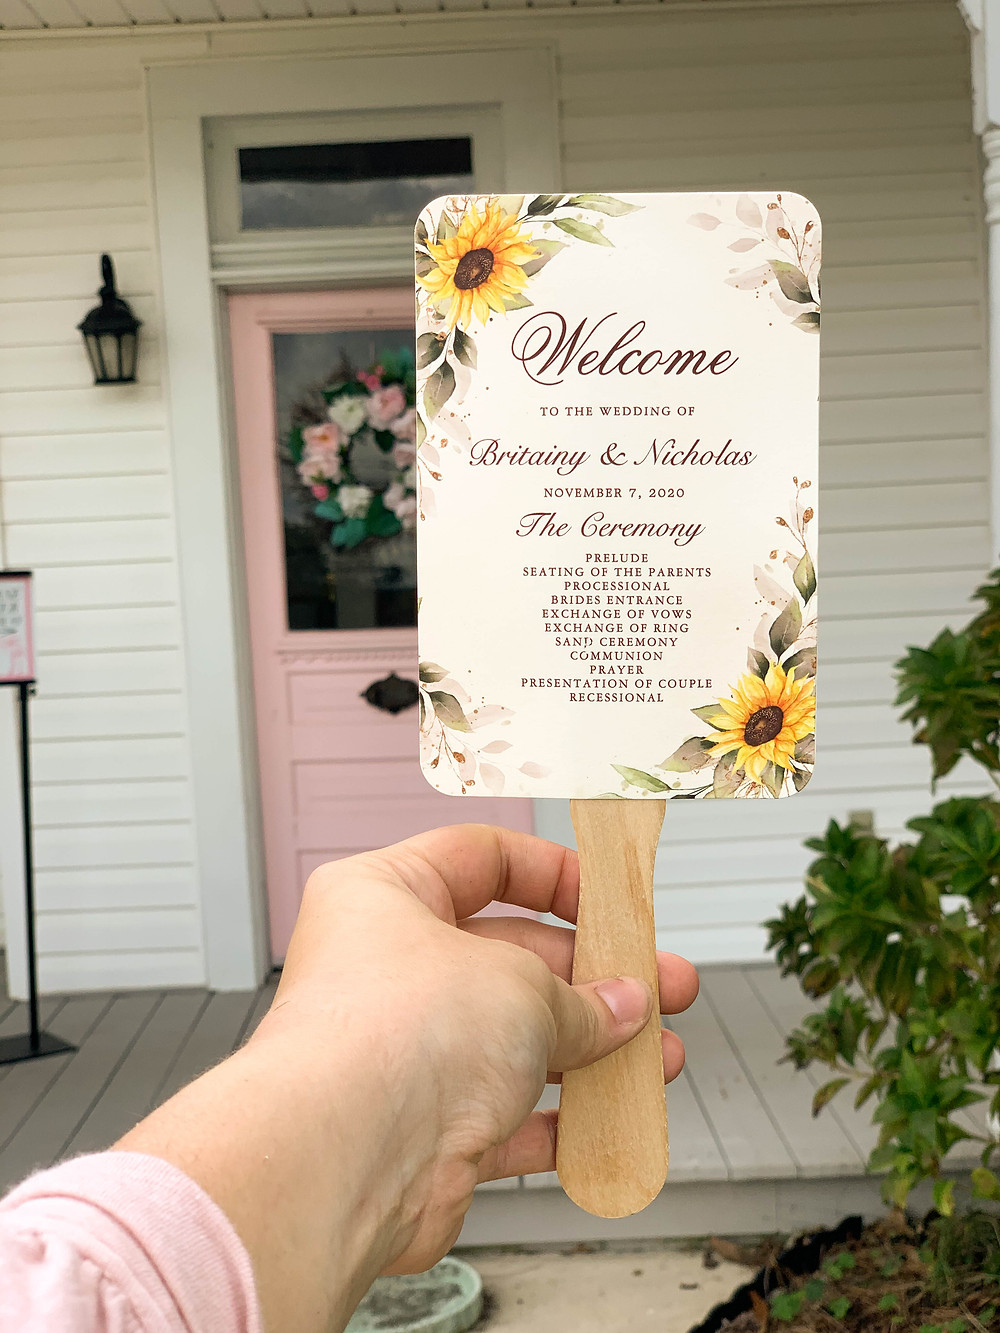 How to have a Covid-Free Wedding